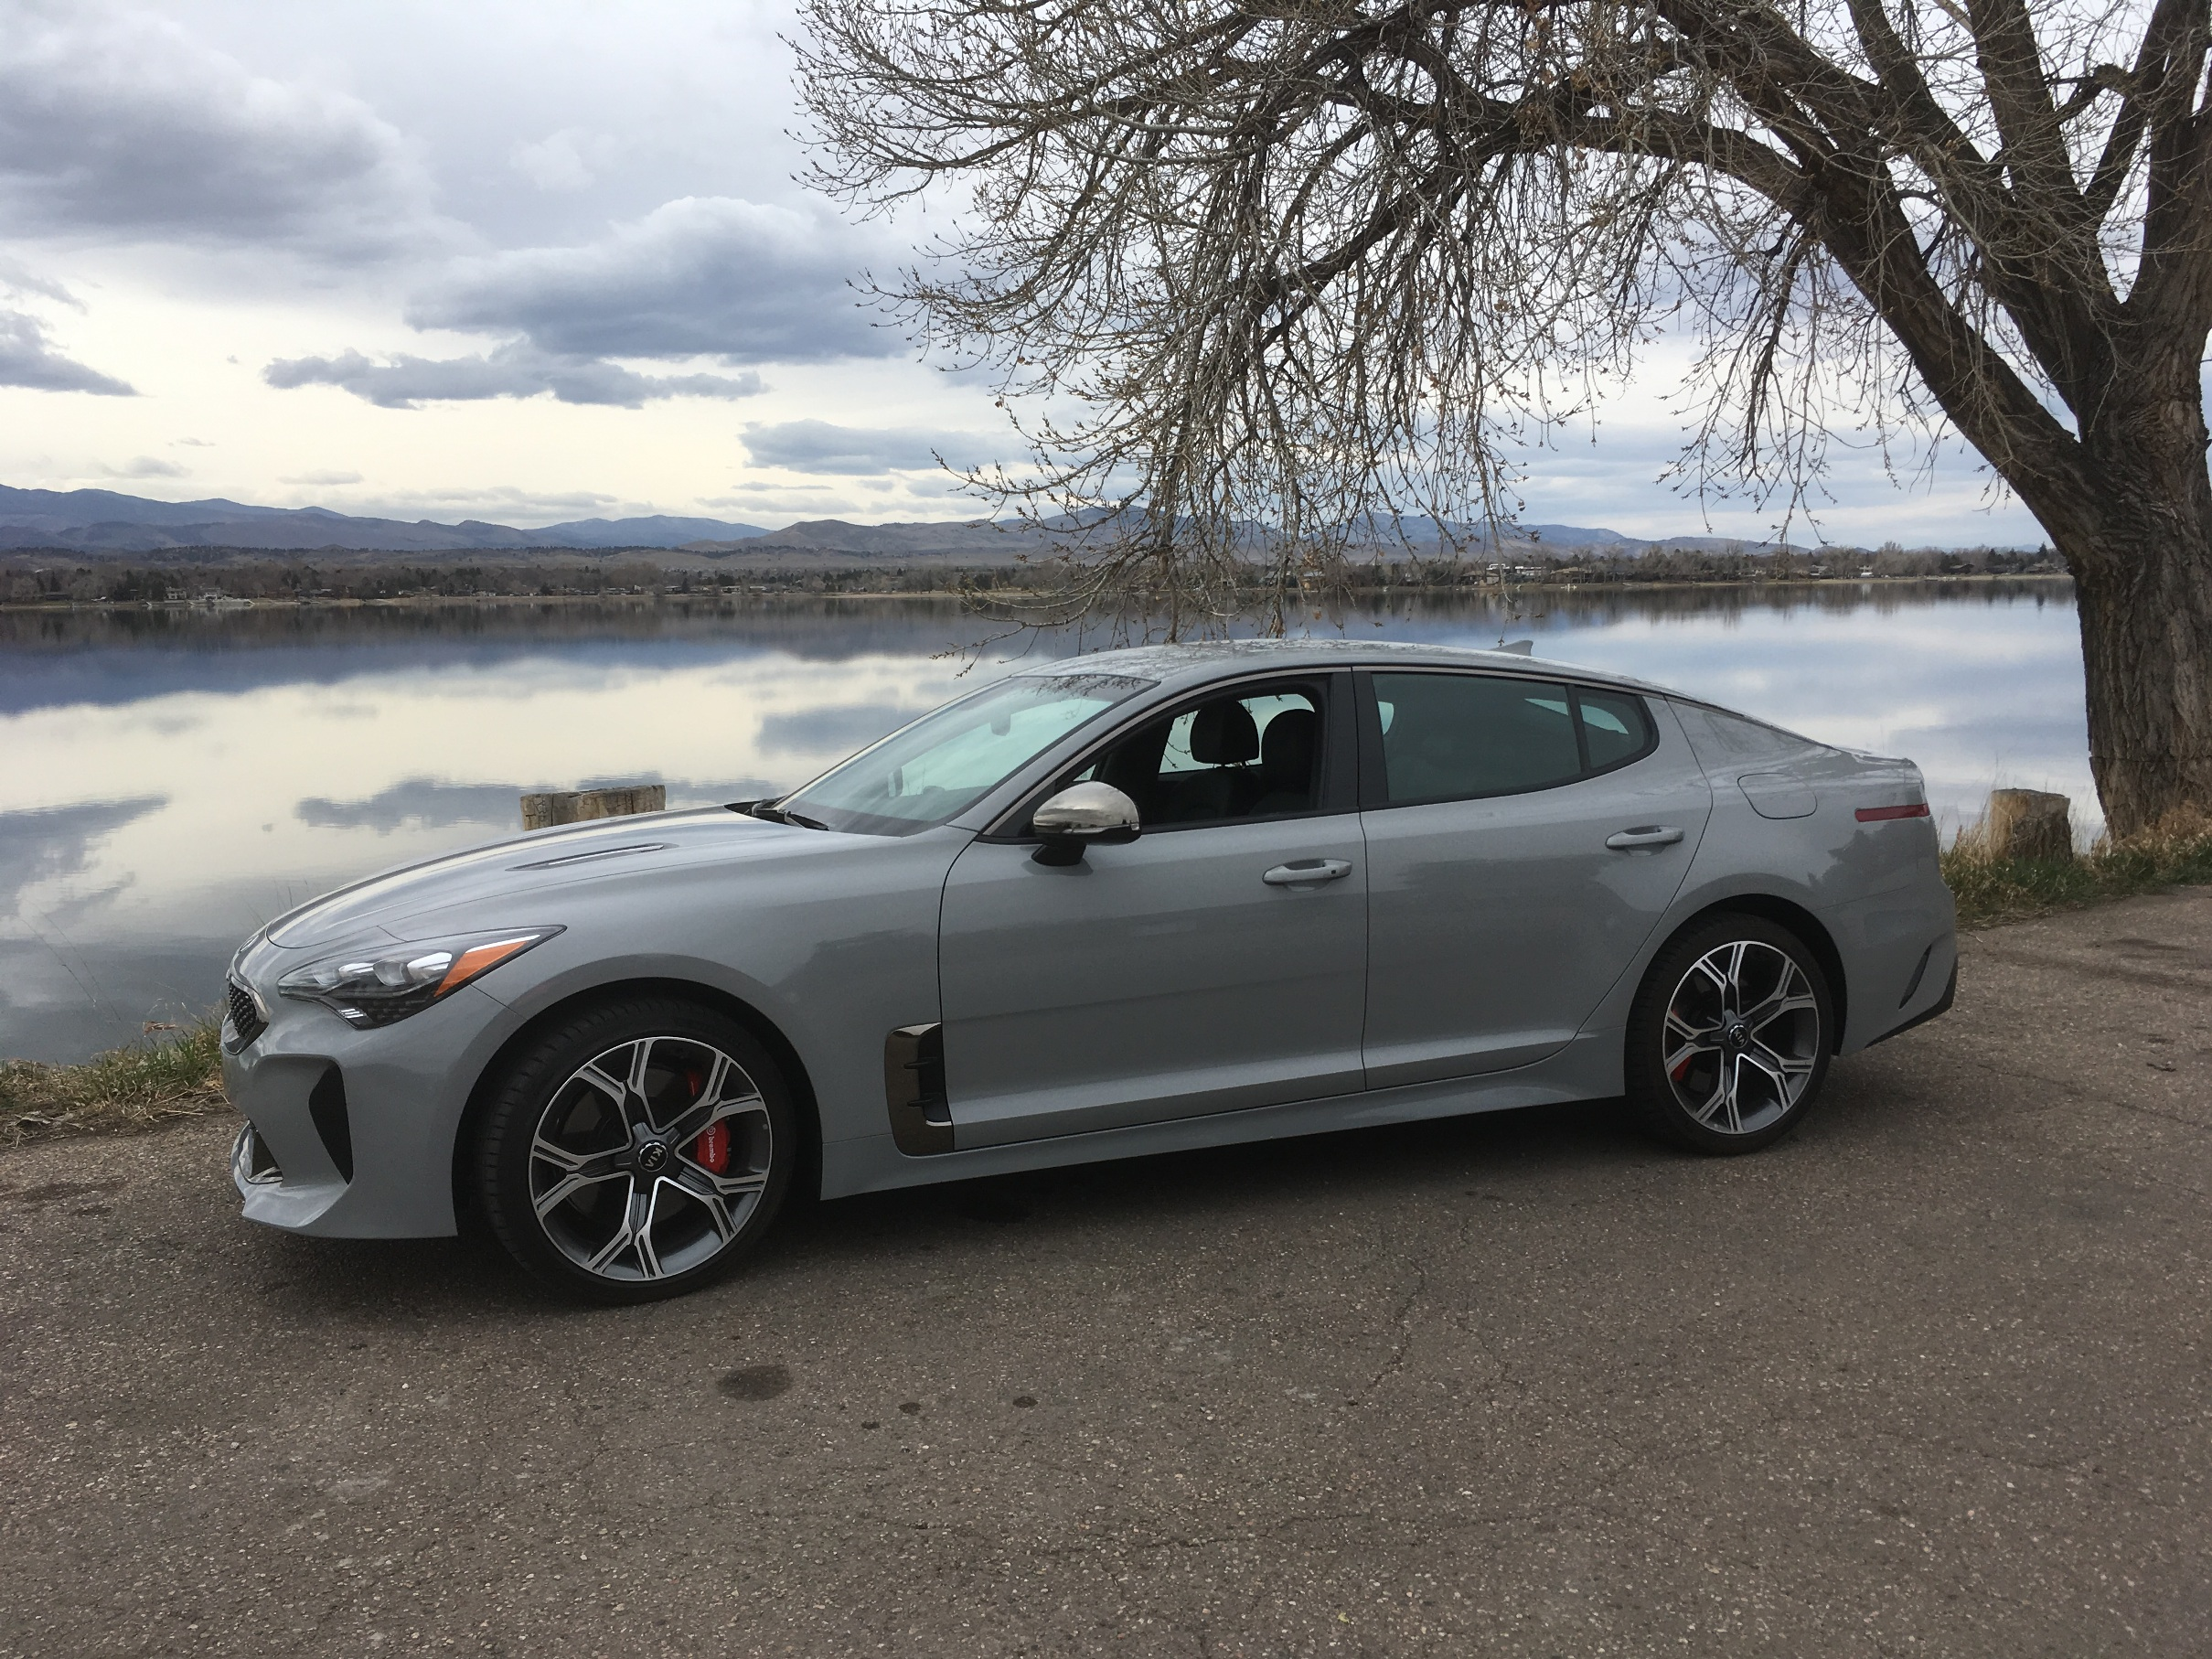 kia adds pizzazz with stinger gt bud wells bud wells